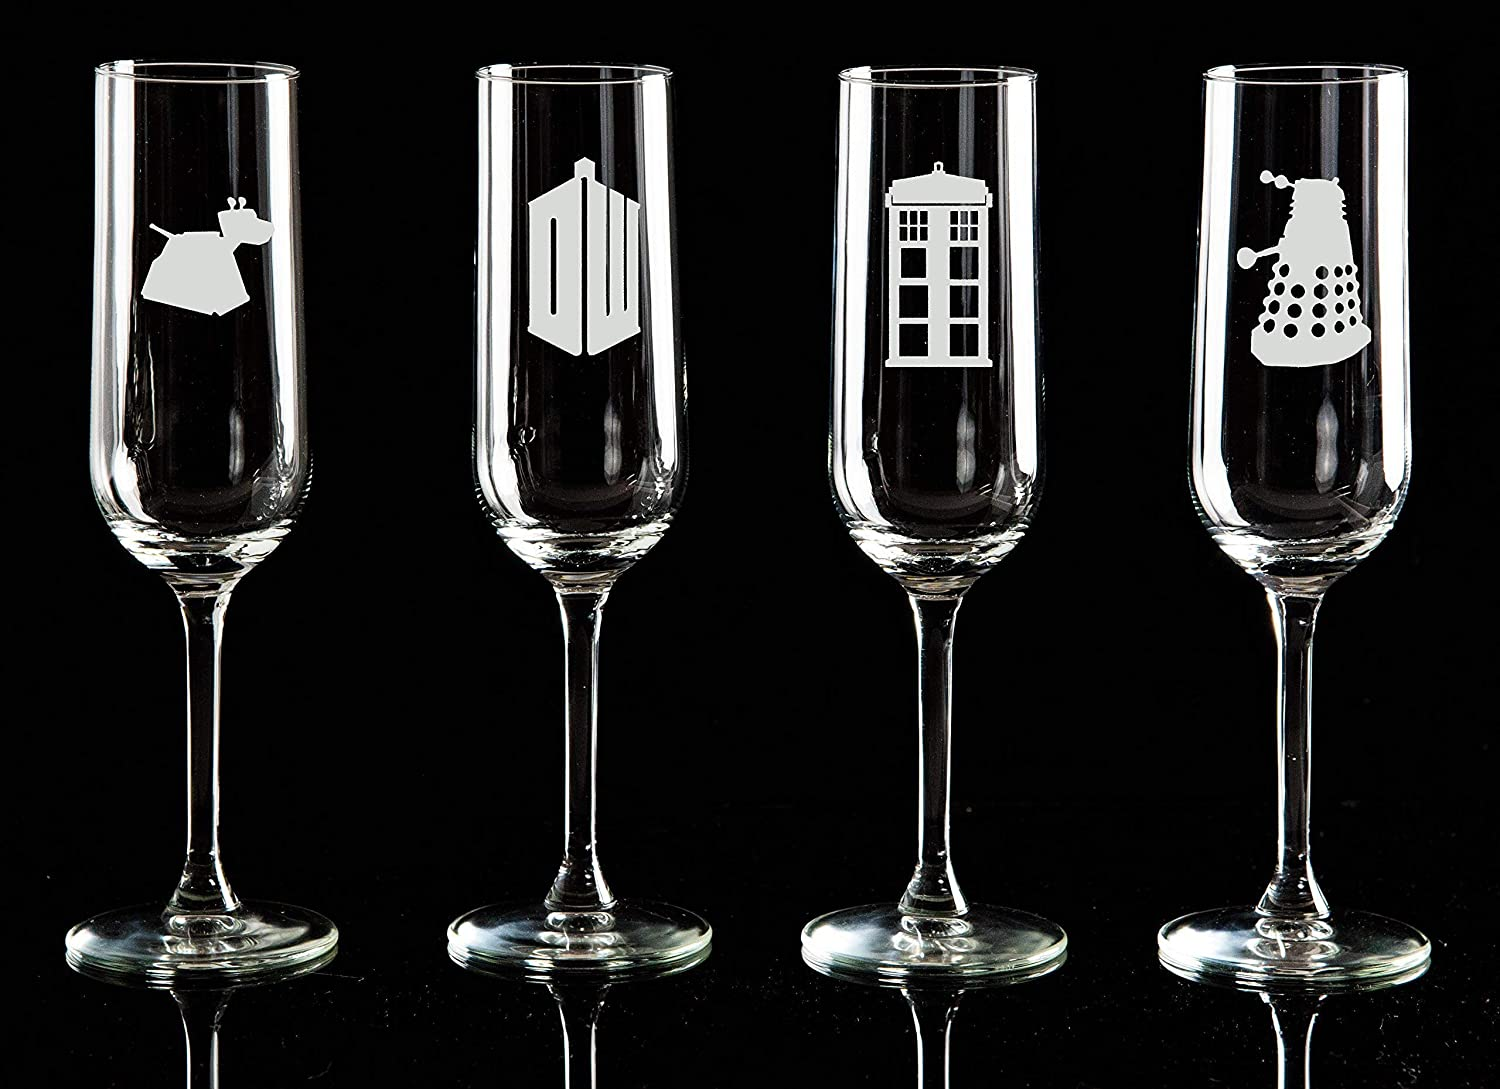 Doctor Who Etched Shot Glasses Set of 4 matching Wine Glasses and Beer Glasses Available birthday and Christmas gifts Ideal for weddings